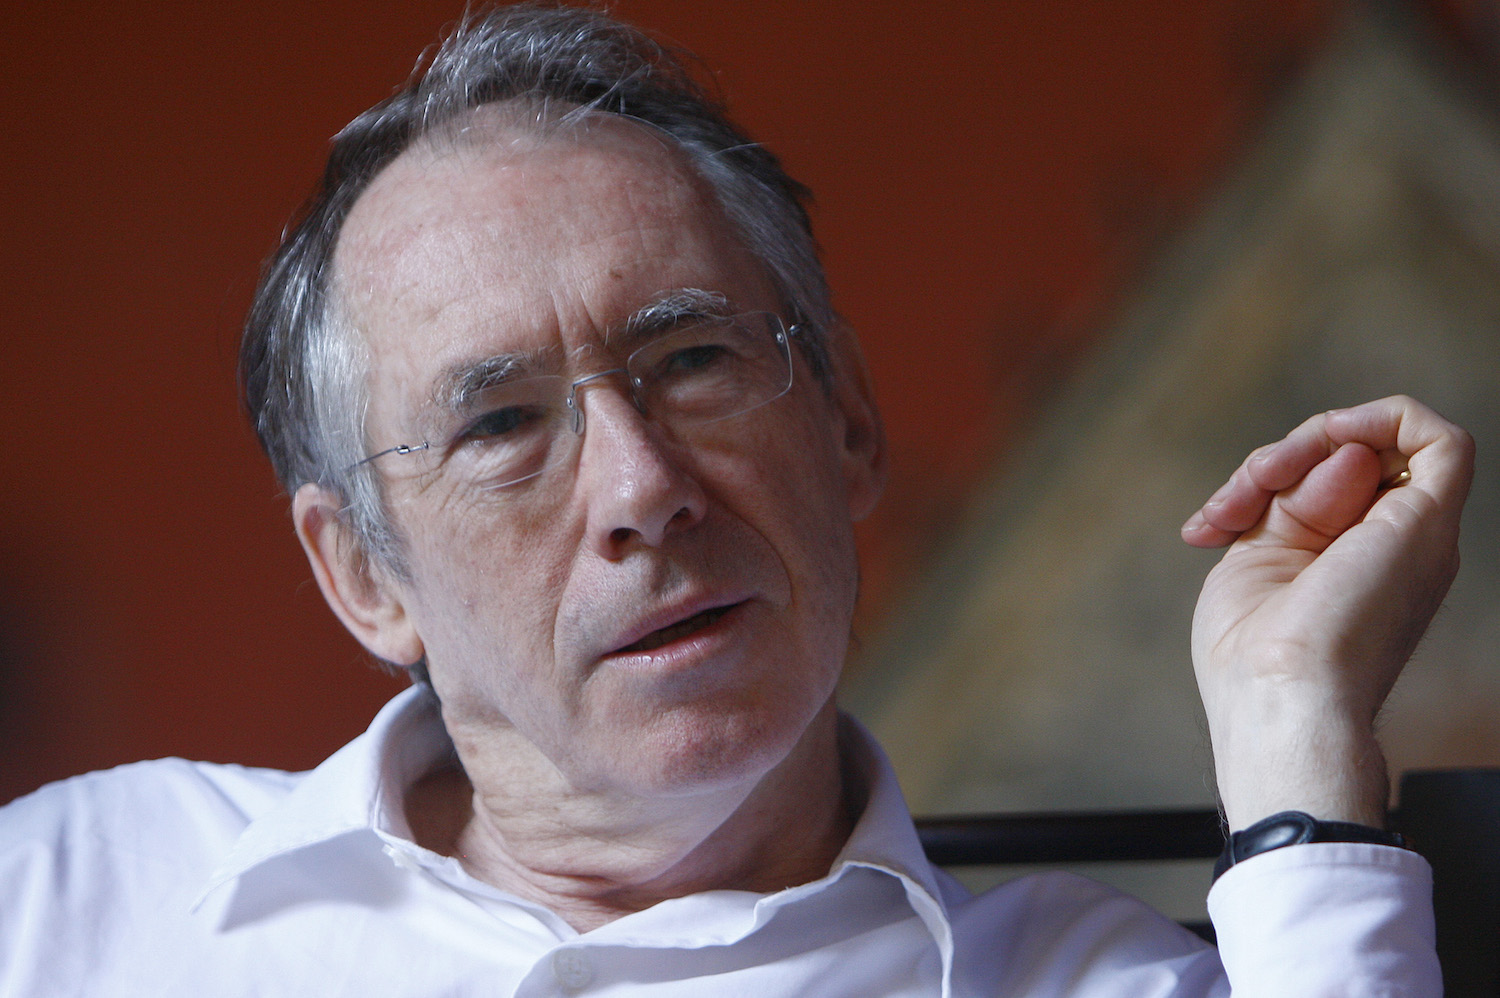 Top Author Ian Mcewan: I Can Only Think Of People With Penises As Men ·  Pinknews